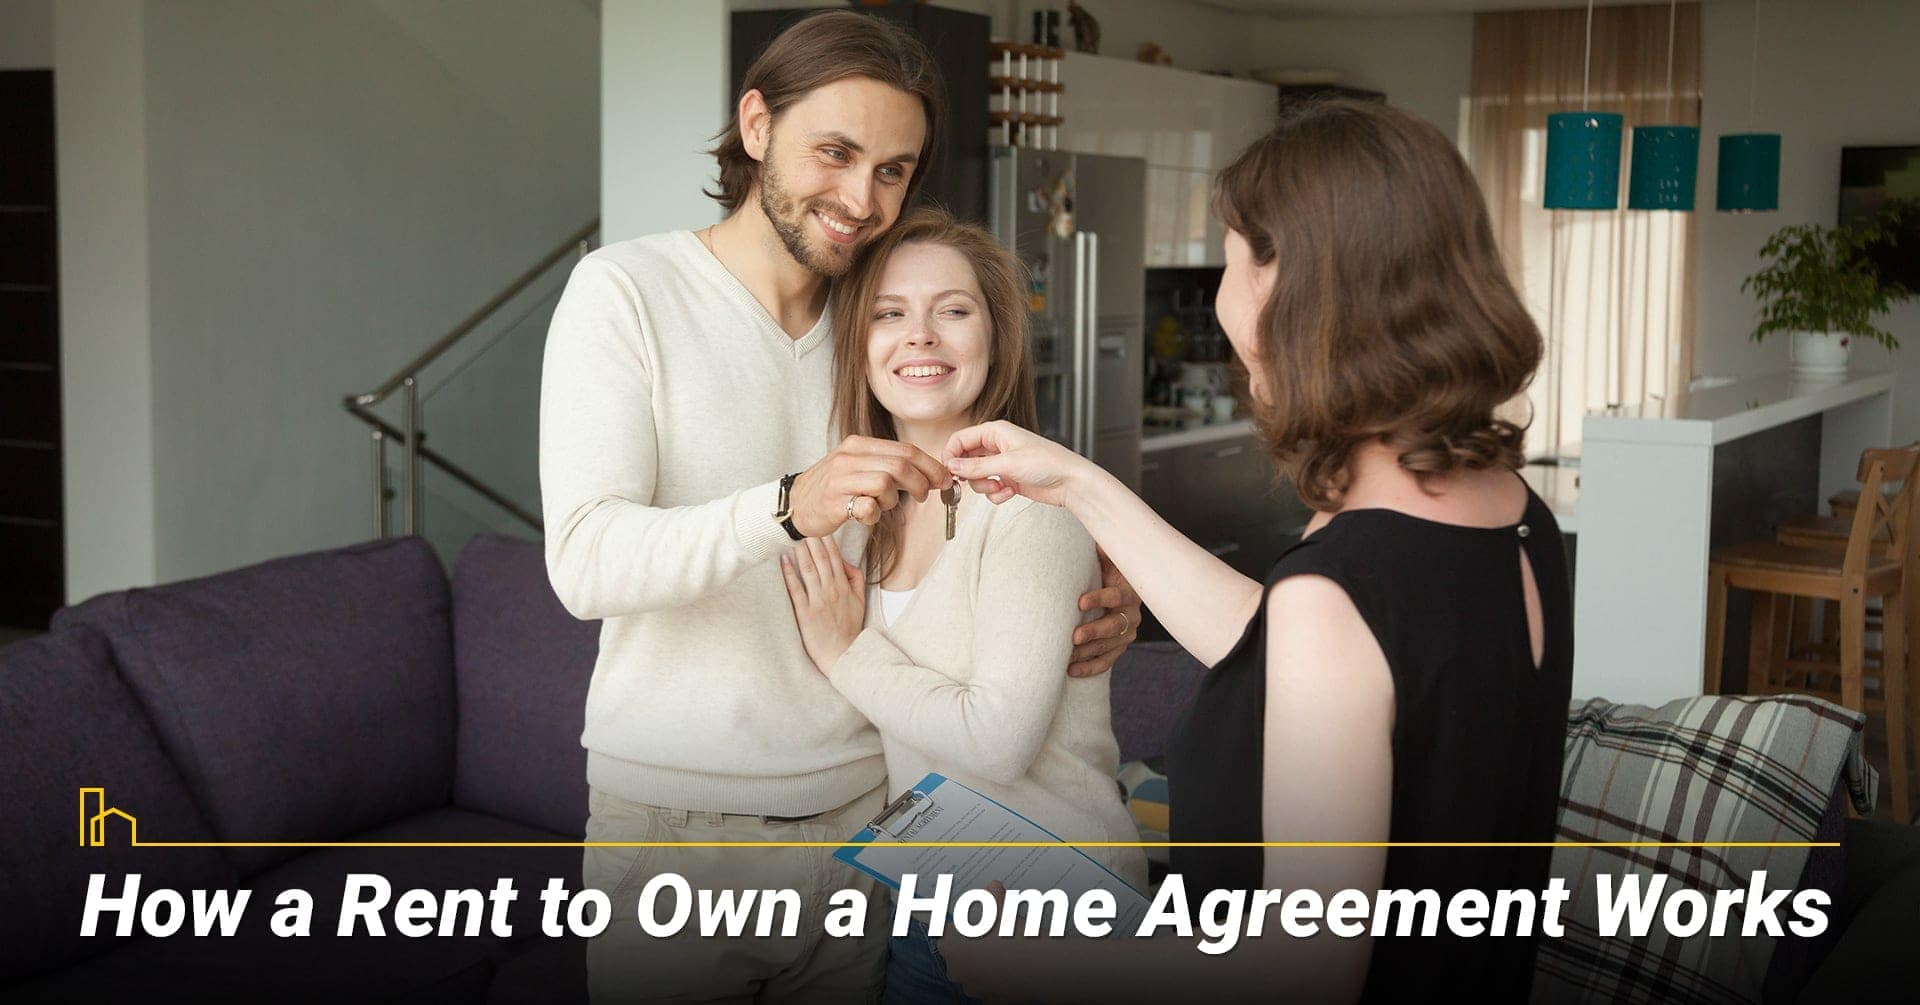 How a Rent to Own a Home Agreement Works, understand your rent to own agreement